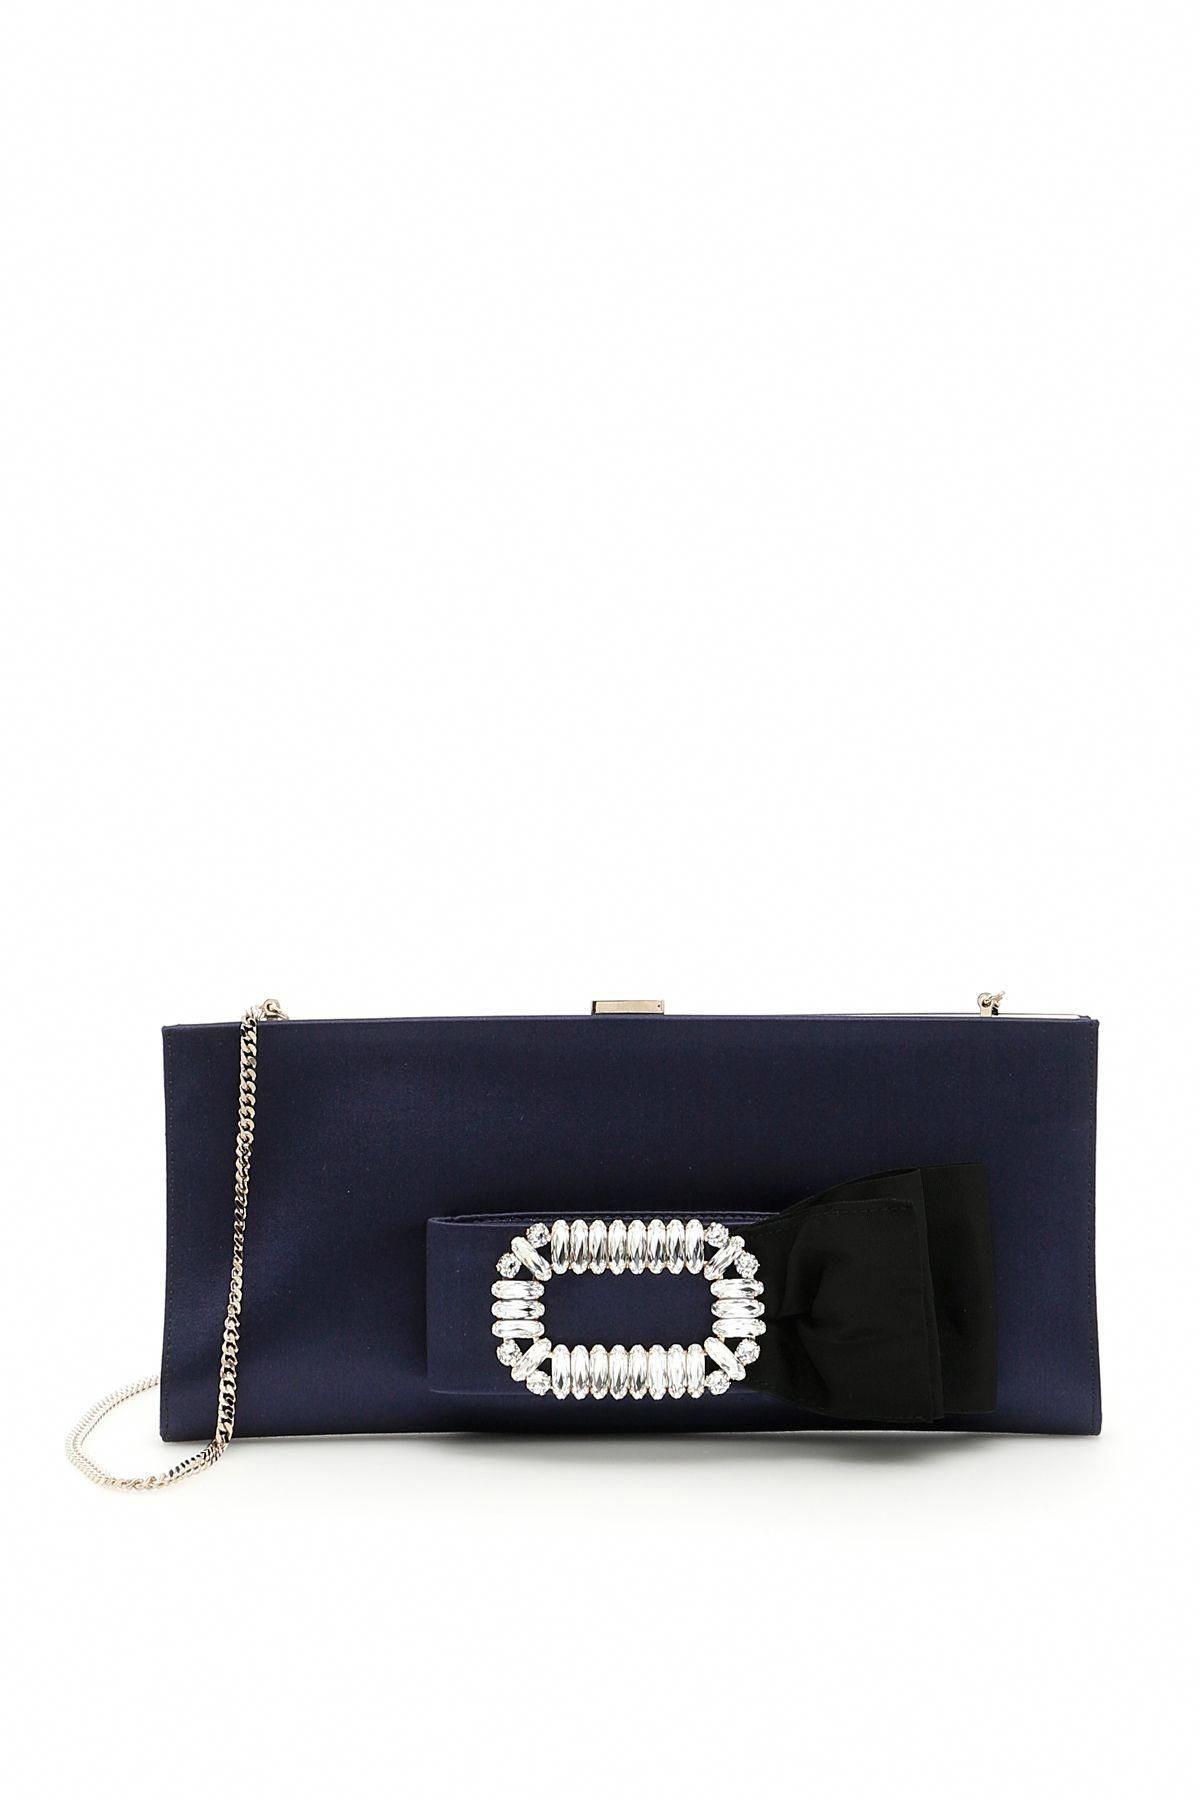 cff8e73f8f ROGER VIVIER SMALL PILGRIM JEWELS PAPILLON CLUTCH.  rogervivier  bags   shoulder bags  clutch  lining  crystal  hand bags